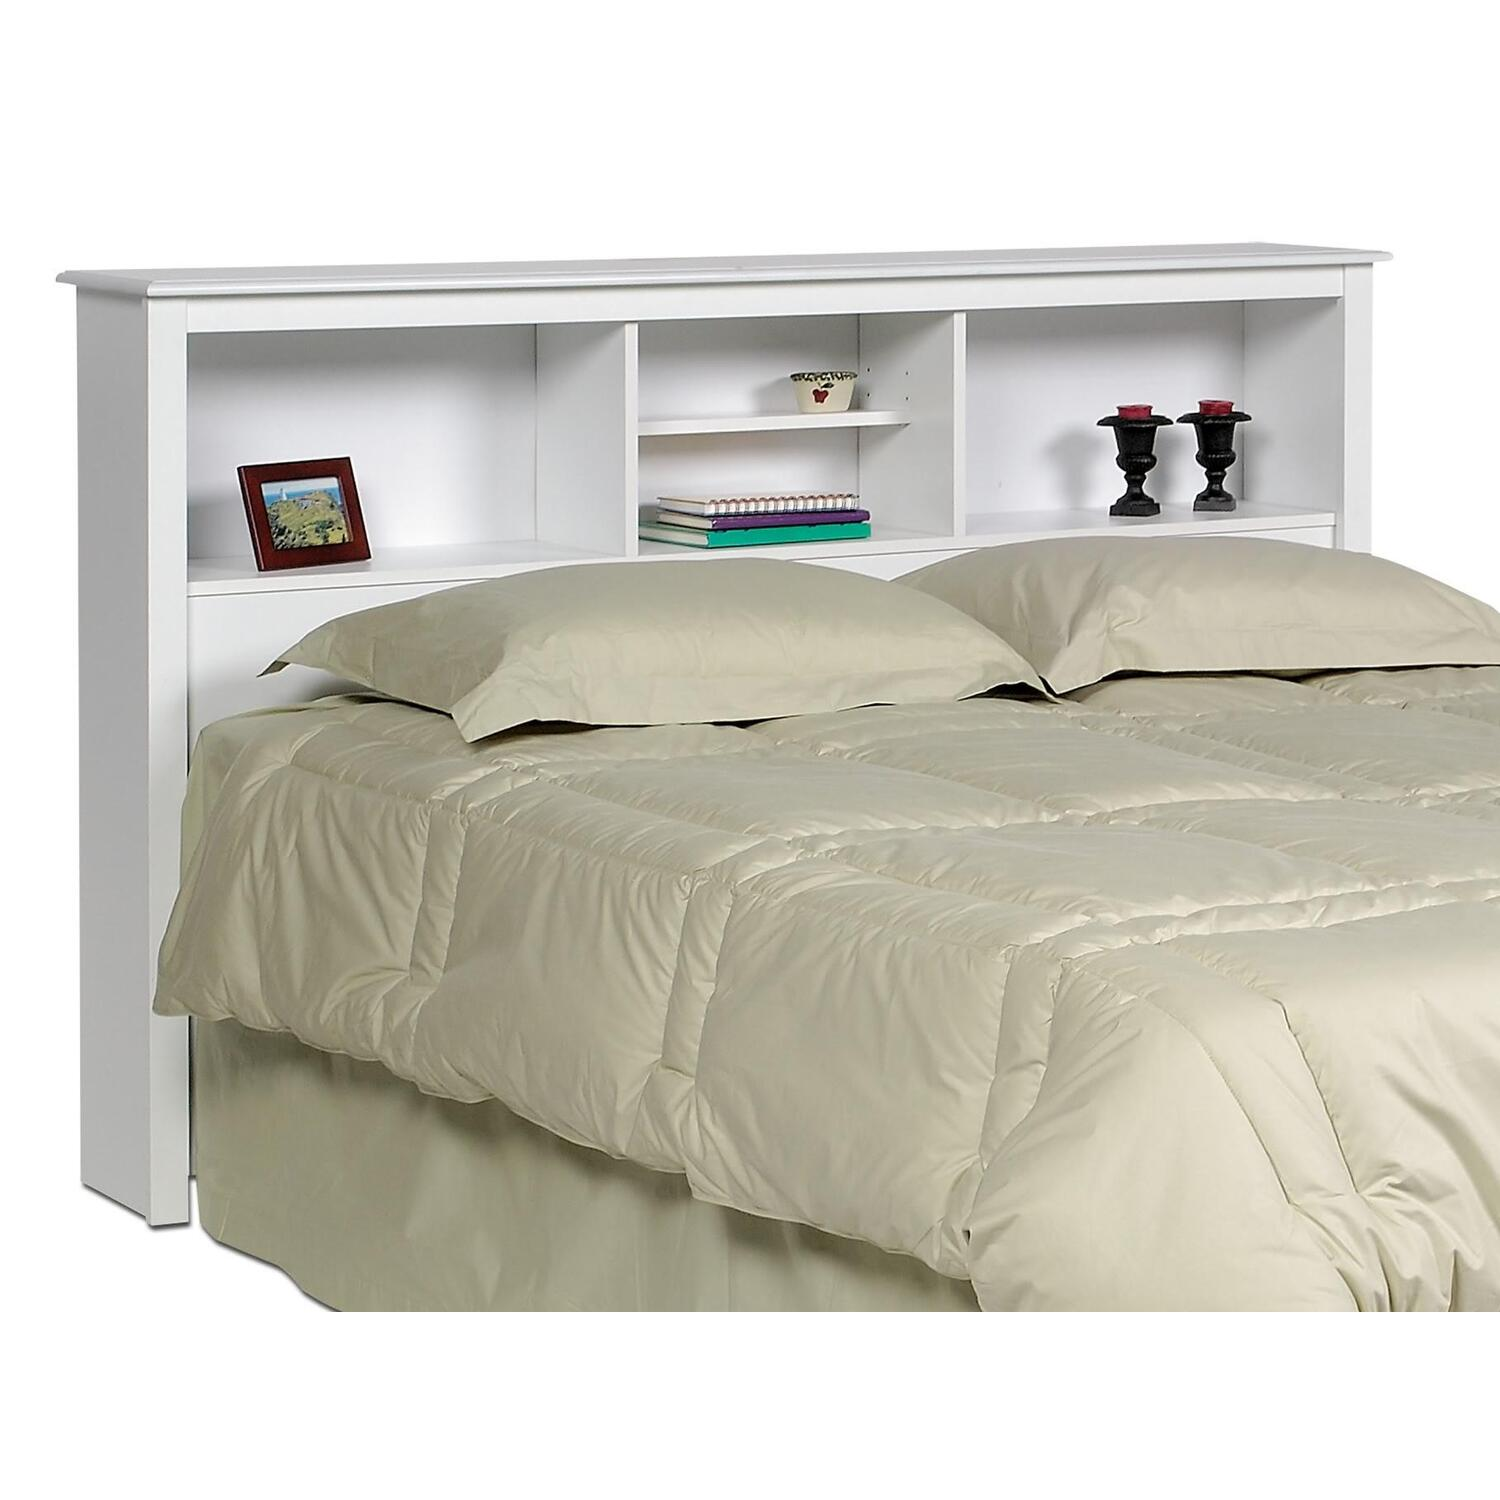 co bed d twin beds bookshelf nongzi storage white mate